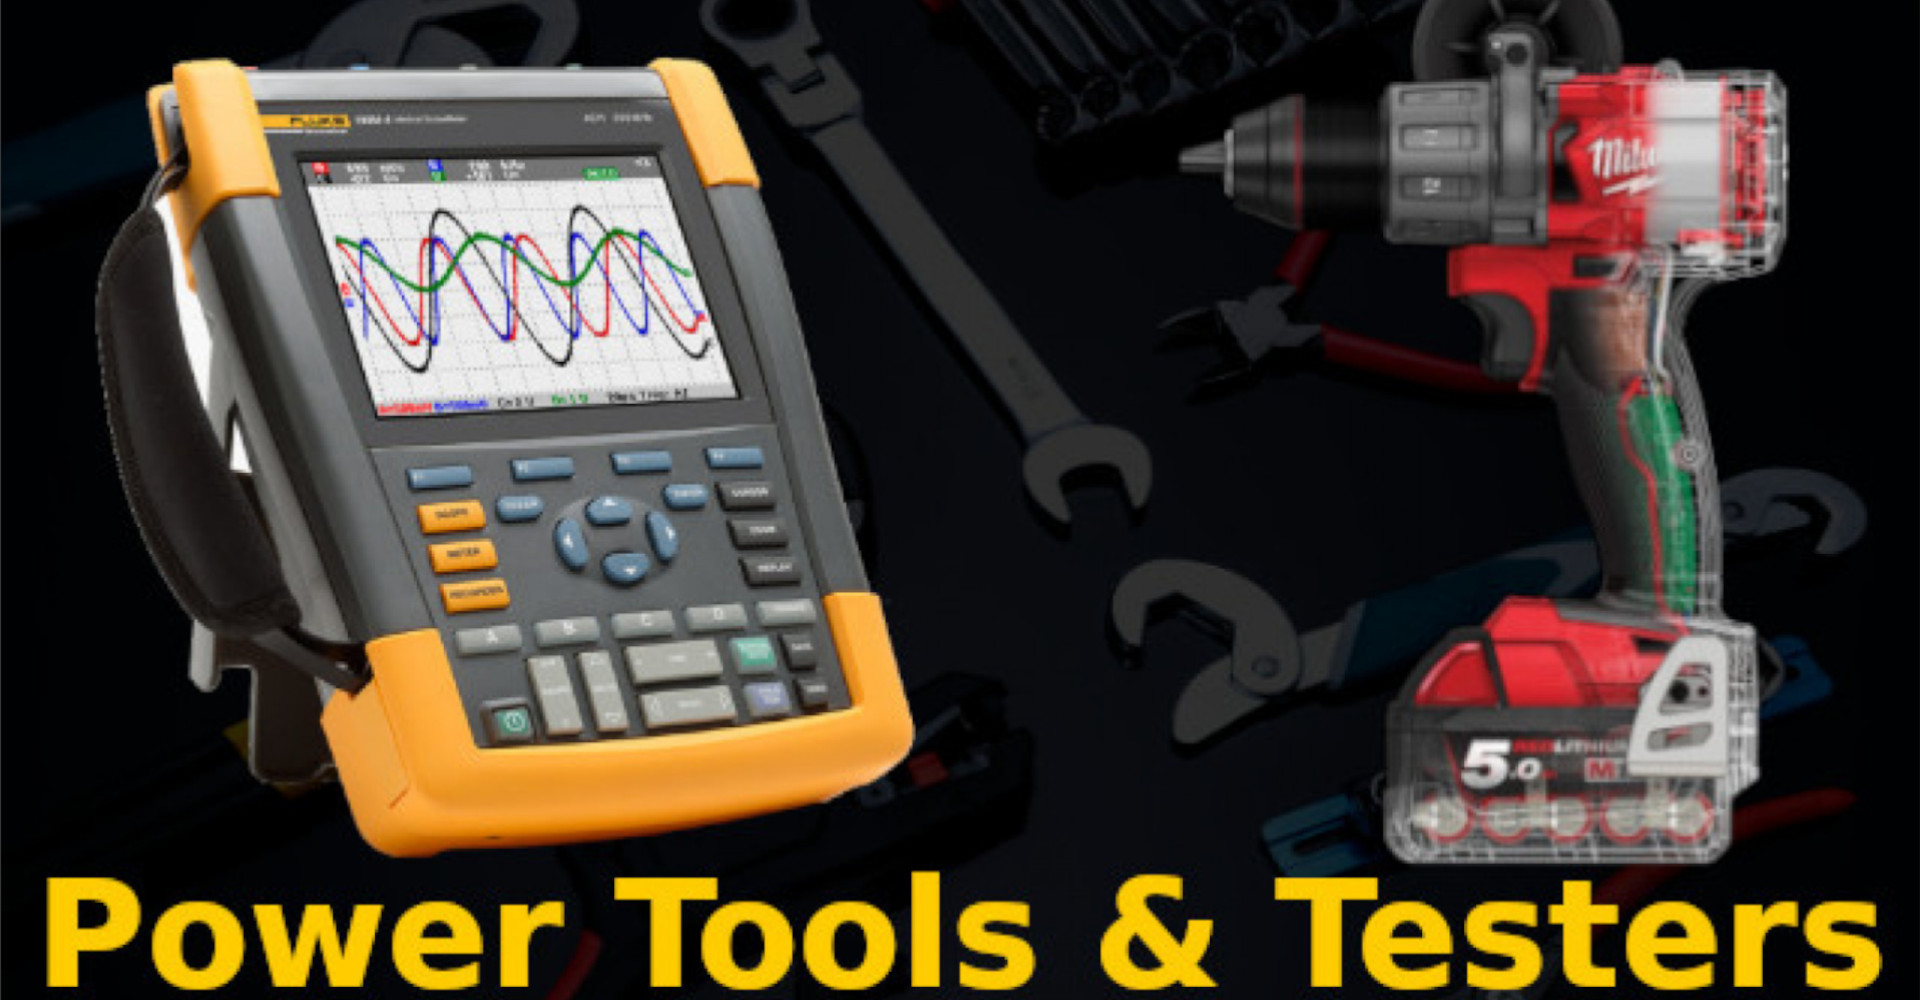 Power Tools&Testers